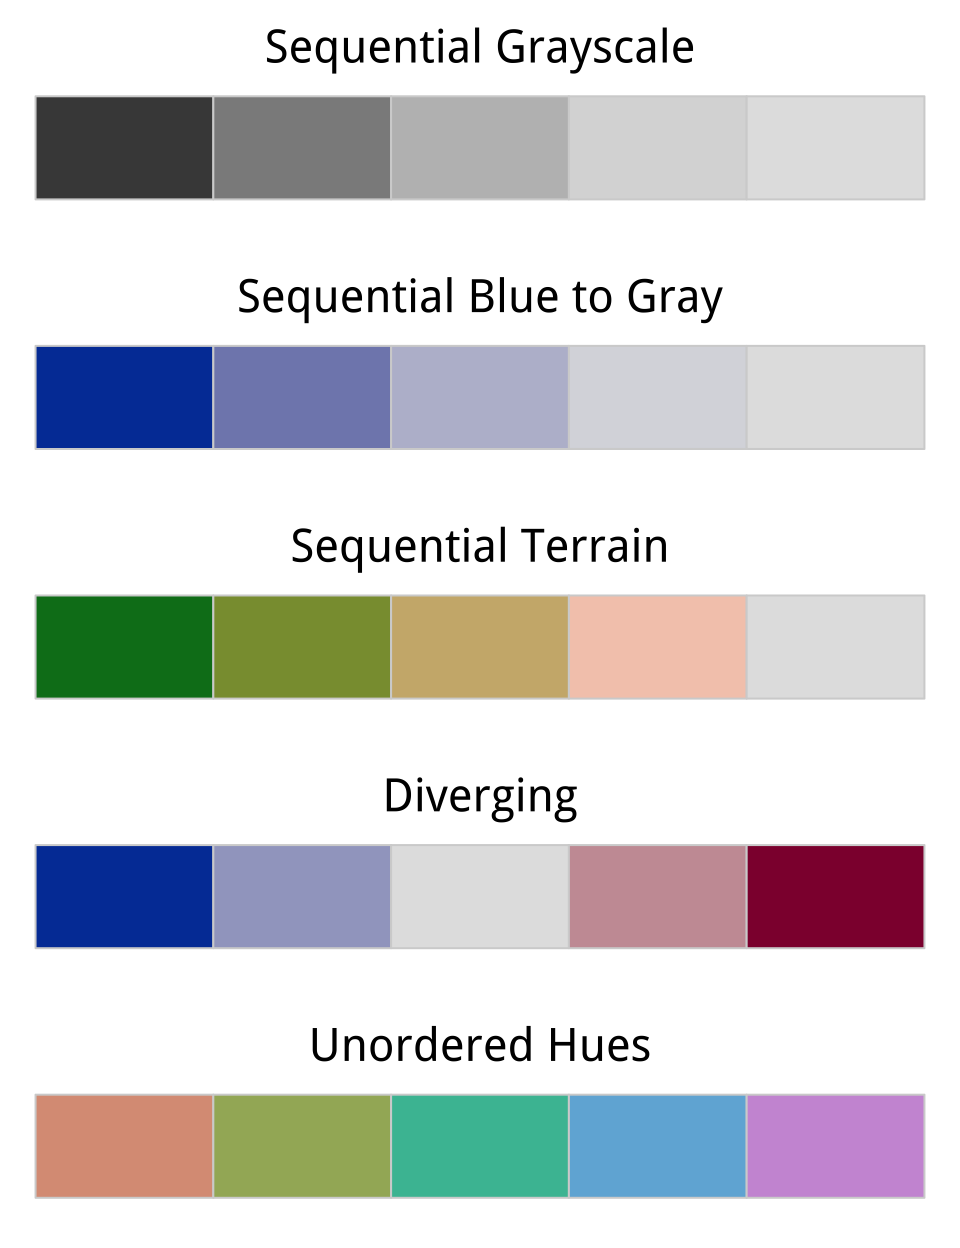 Five palettes generated from R's colorspace library. From top to bottom, the sequential grayscale palette varies only in luminance, or brightness. The sequential blue palette varies in both luminance and chrominance (or intensity). The third sequential palette varies in luminance, chrominance, and hue. The fourth palette is diverging, with a neutral midpoint. The fifth features balanced hues, suitable for unordered categories.